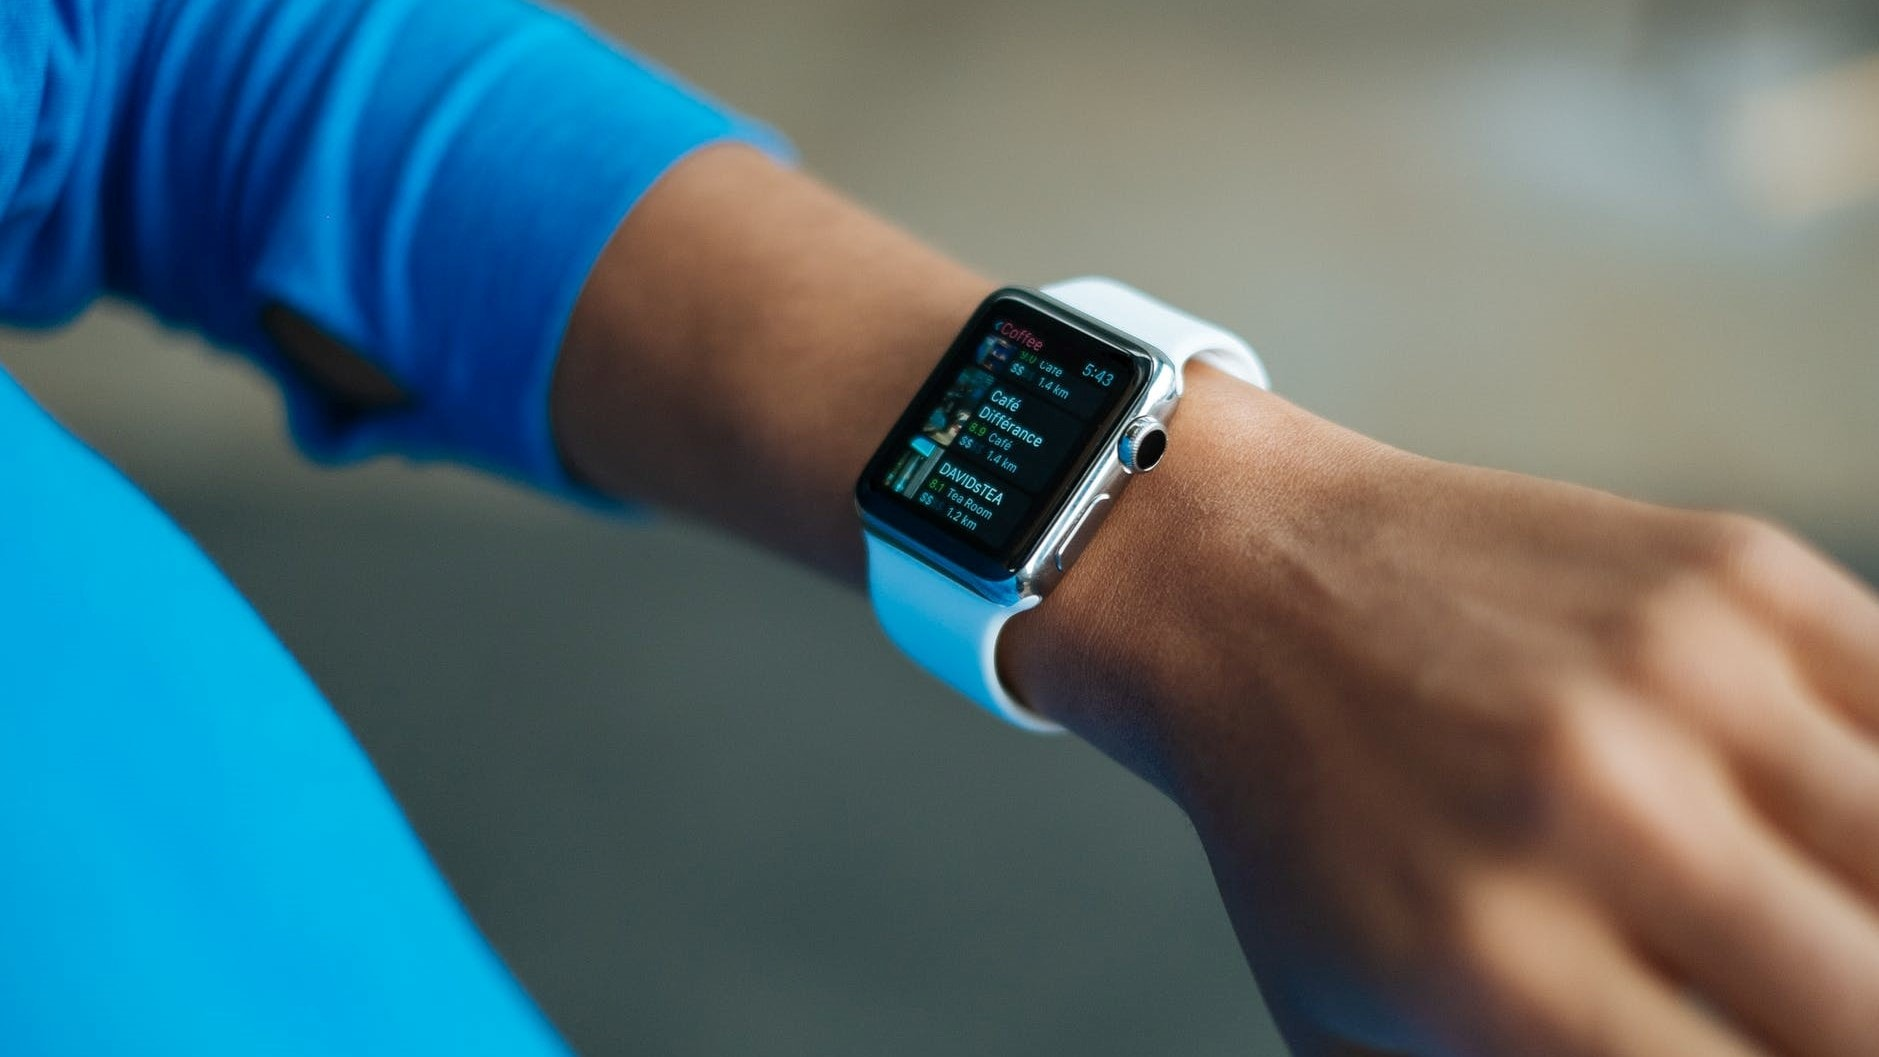 Fitbit in beeld rond pols